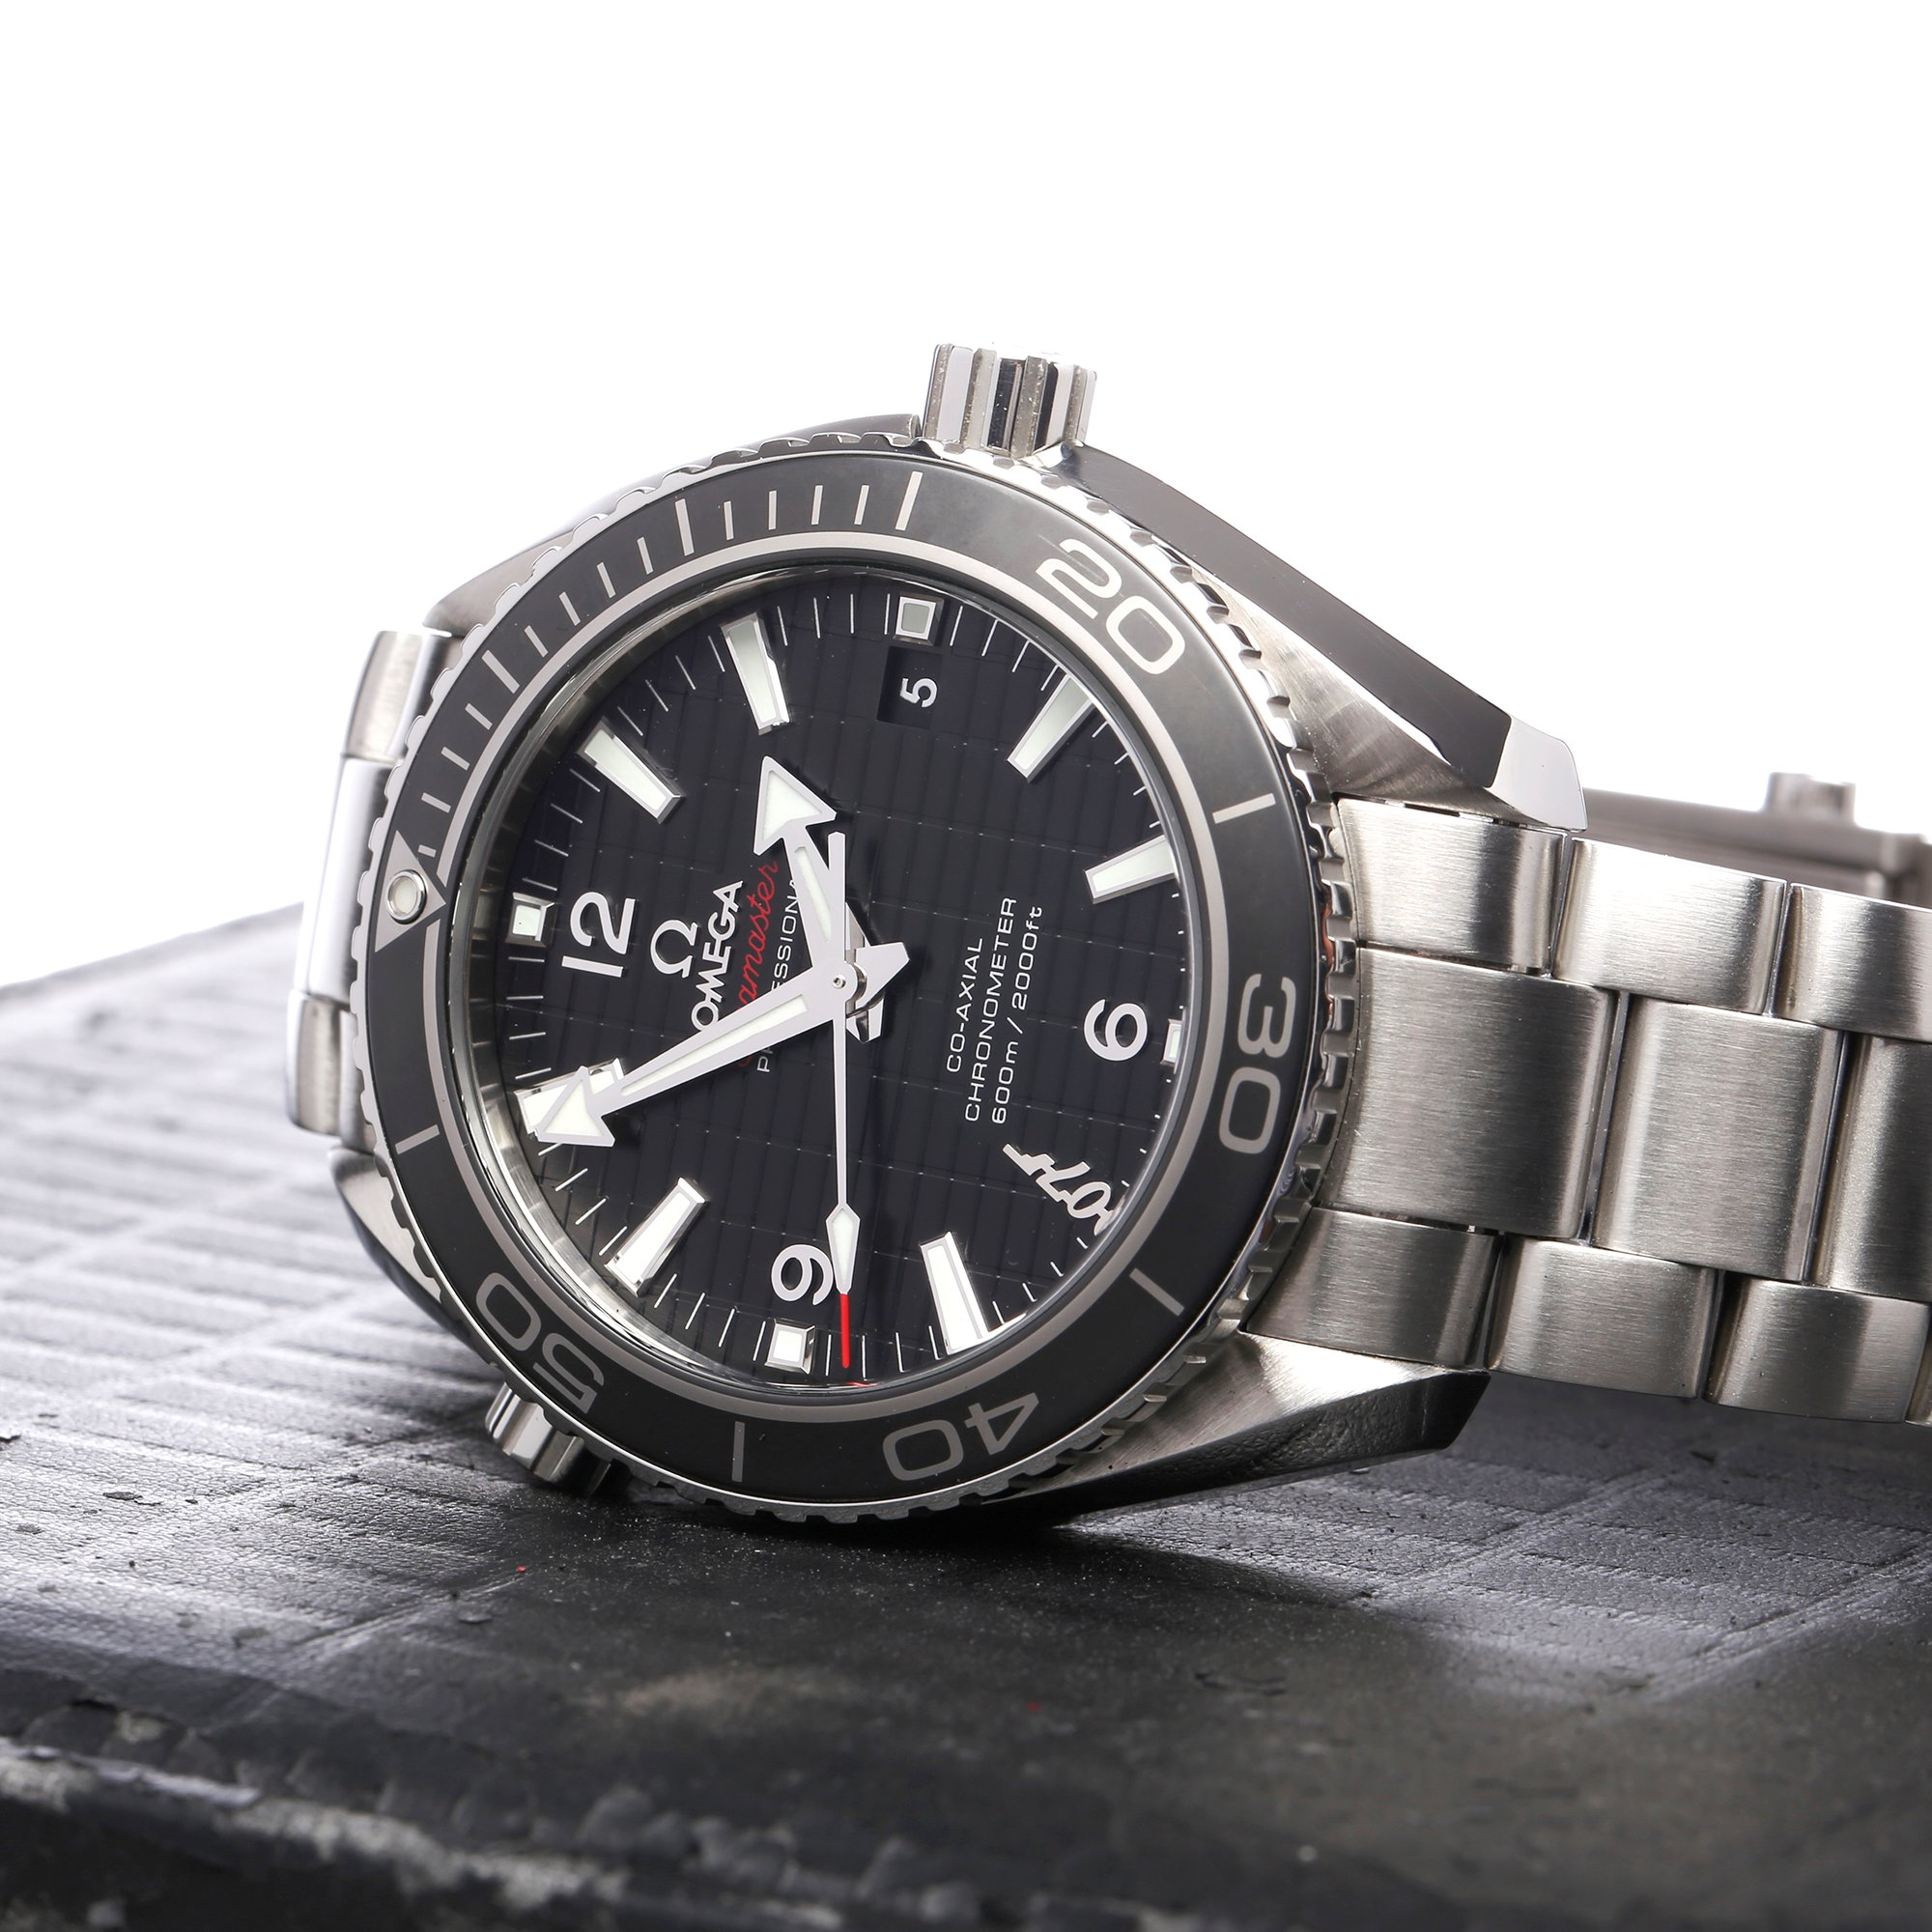 Omega Seamaster Planet Ocean Skyfall Ltd Edition Roestvrij Staal 85951068